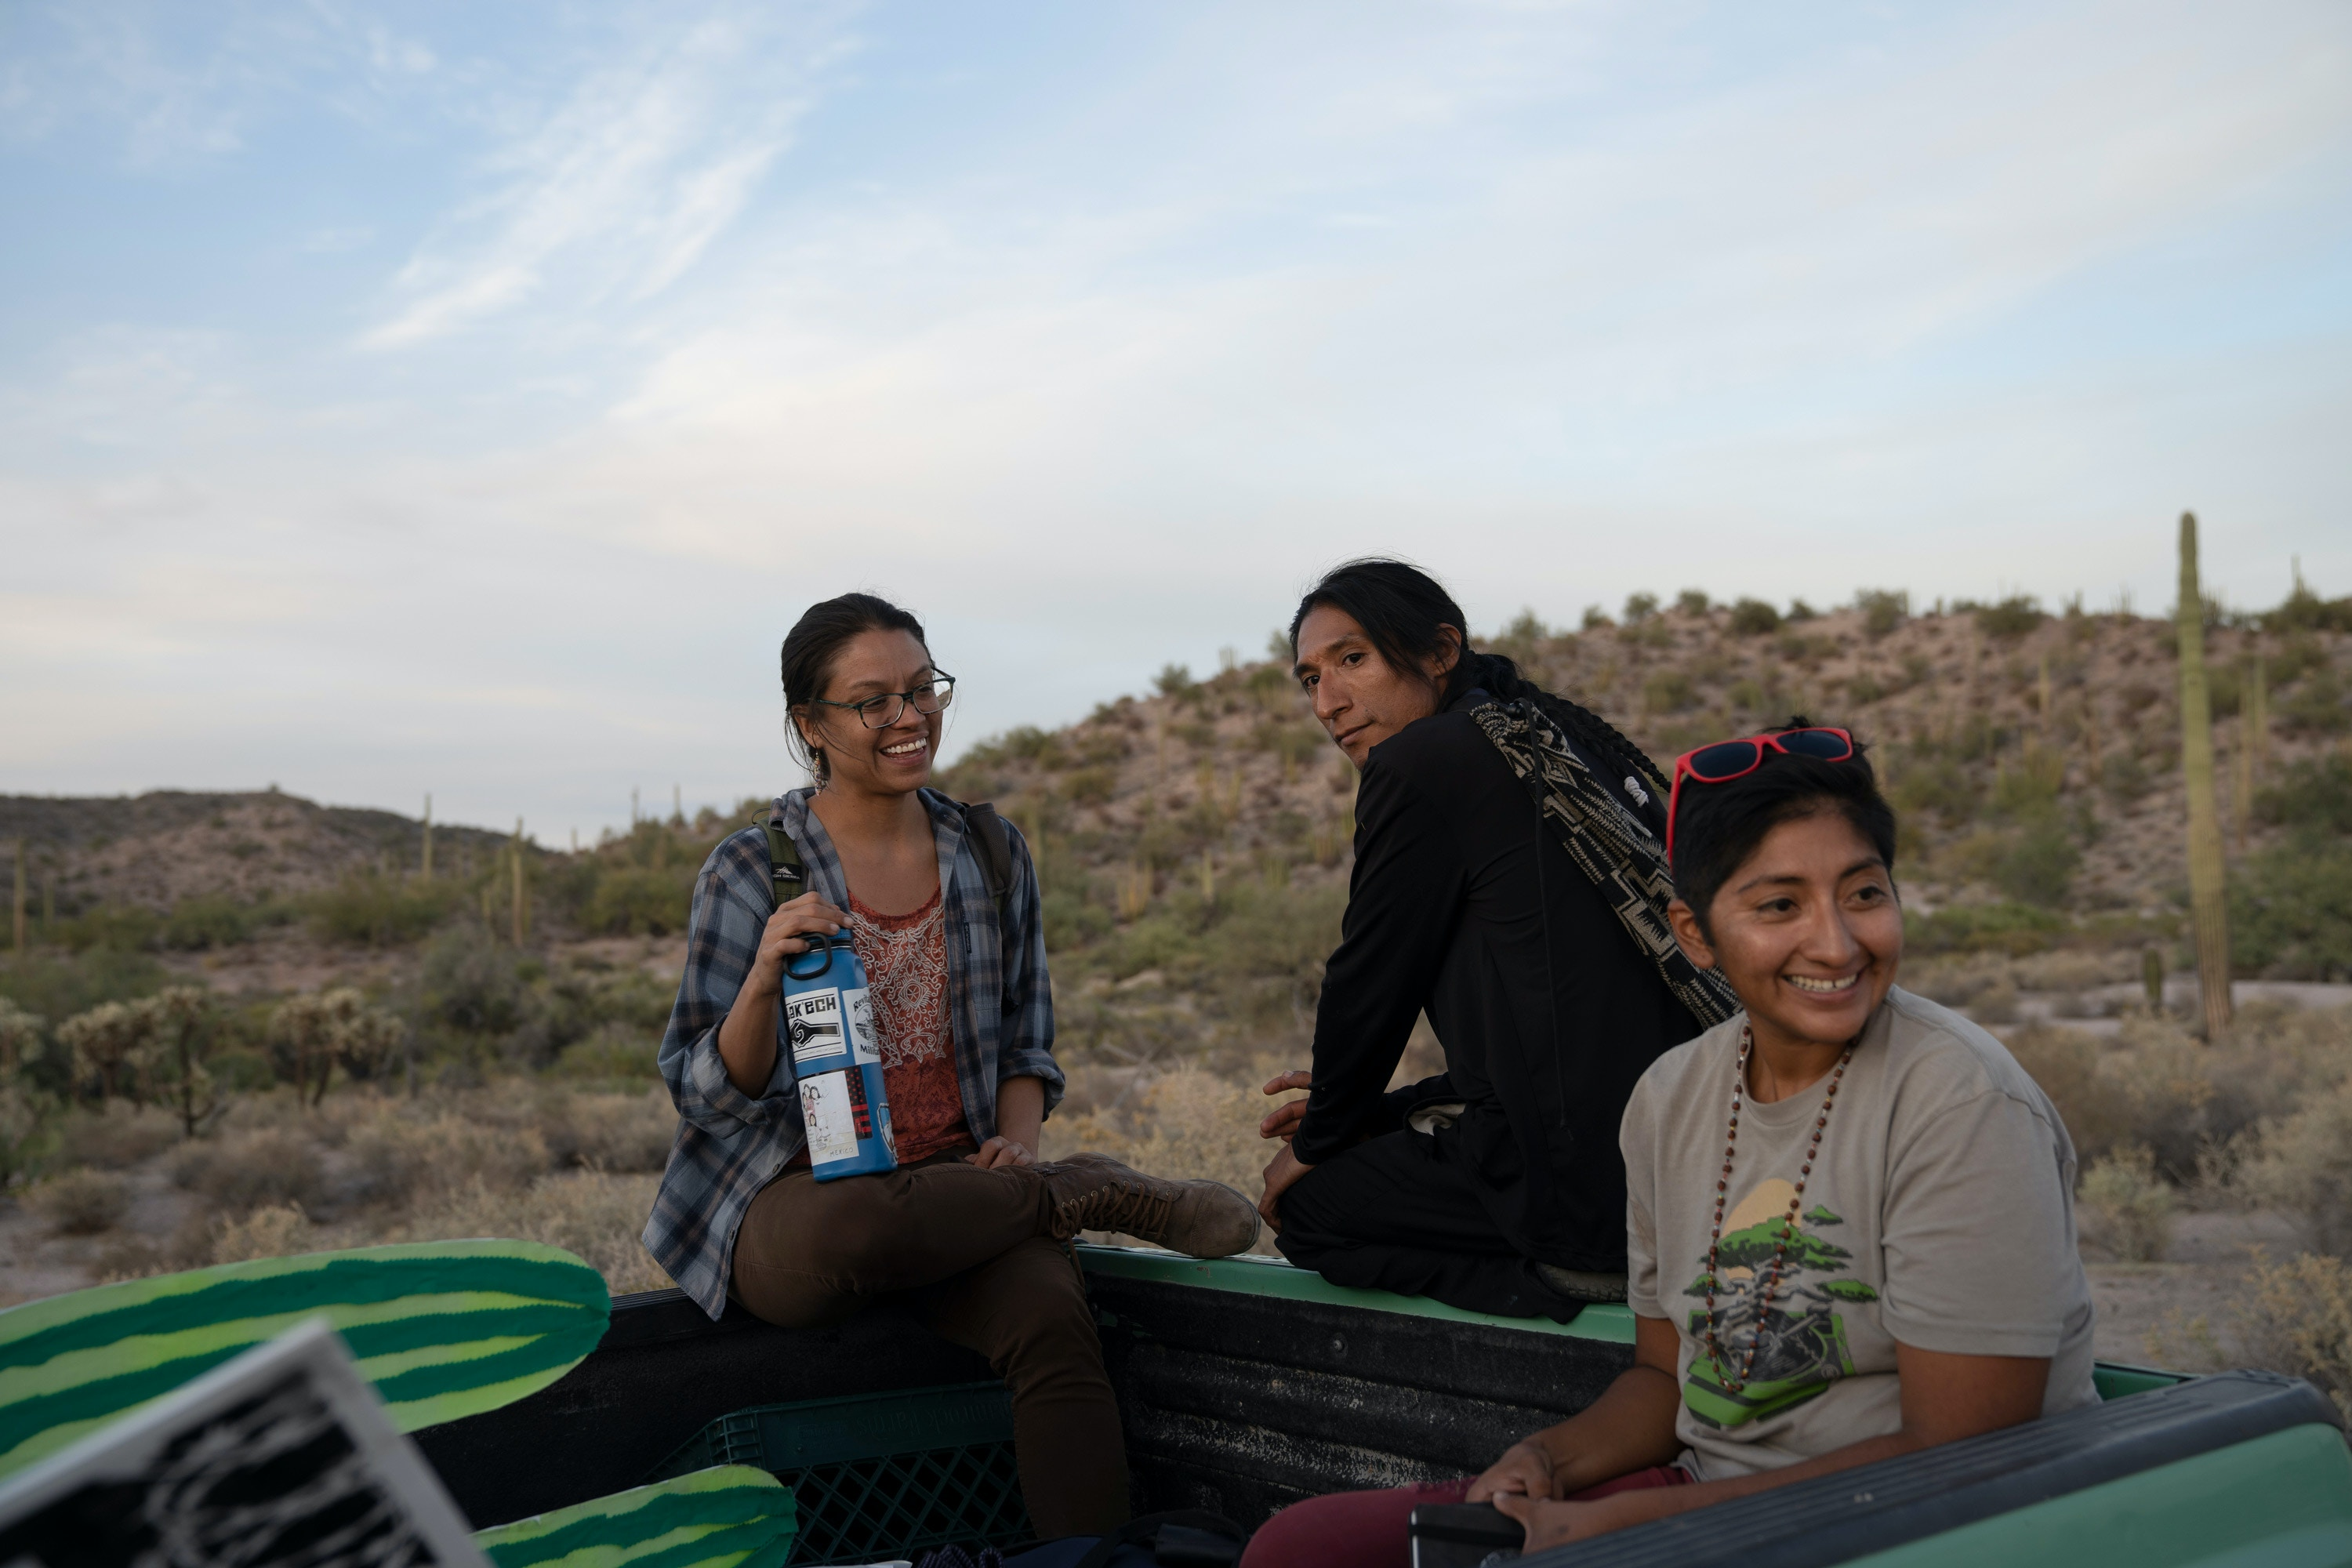 Amber Ortega, 33, (left), a Hia-Ced O'odham and Tohono O'odham activist, student and spoken word poet, Victor Garcia (center), a Hia-Ced O'odham and Tohono O'odham activist and Nellie Jo David, 36 (right), a Hia-Ced O'odham and Tohono O'odham activist sit in the back of a pick-up truck after protesting by the newly constructed U.S. - Mexico border wall in the Organ Pipe Cactus National Monument on November 9, 2019 during a day of actions protesting the building of the wall. The area is sacred to the Hia-Ced O'odham and the Tohono O'odham nations.  Photo by Kitra Cahana/MAPS for The Intercept